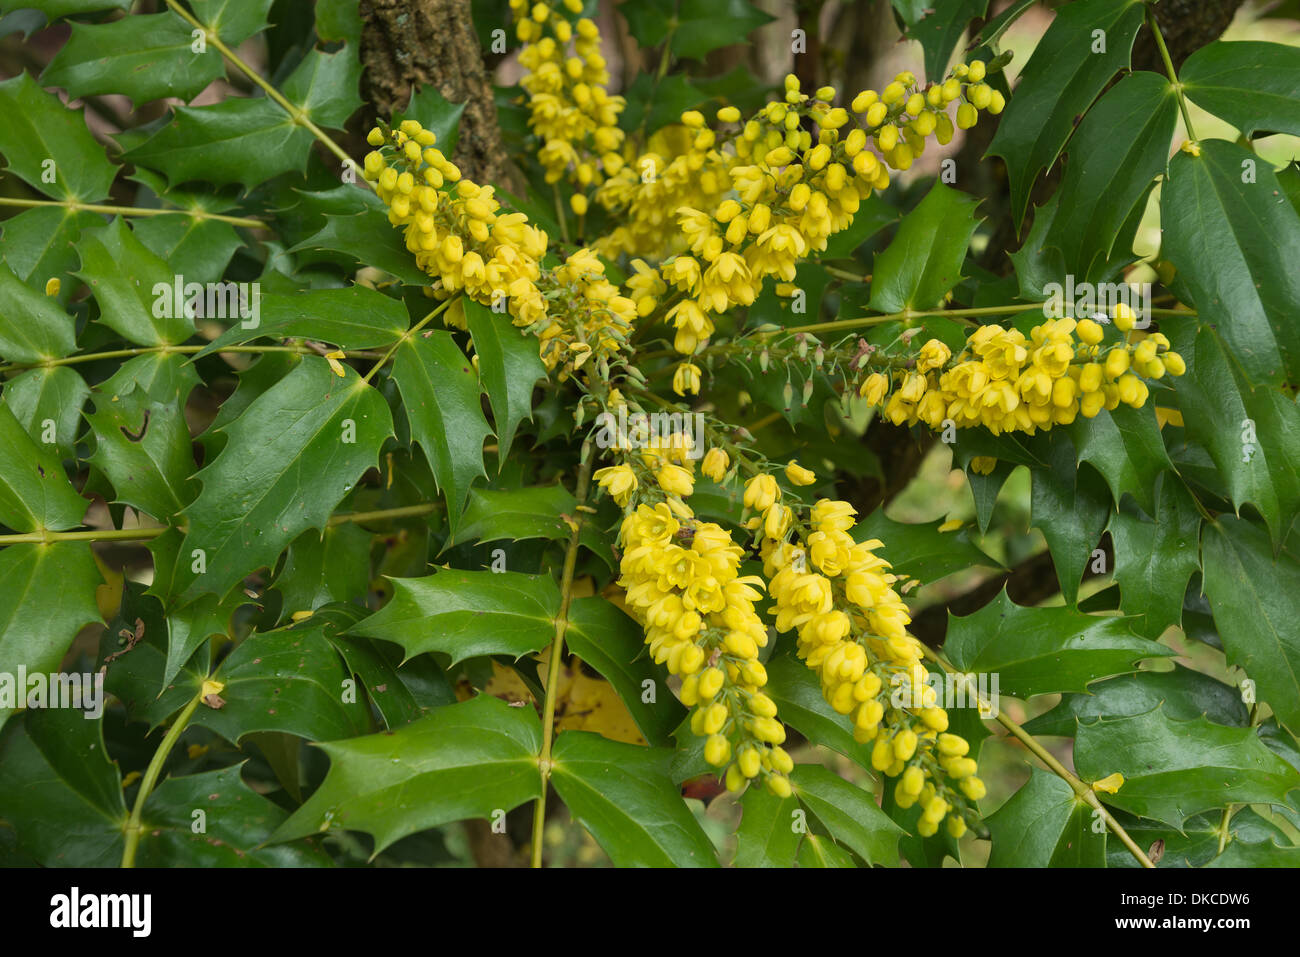 Mahonia Mahonia Flowers Winter Flowering Shrub Yellow Flowers